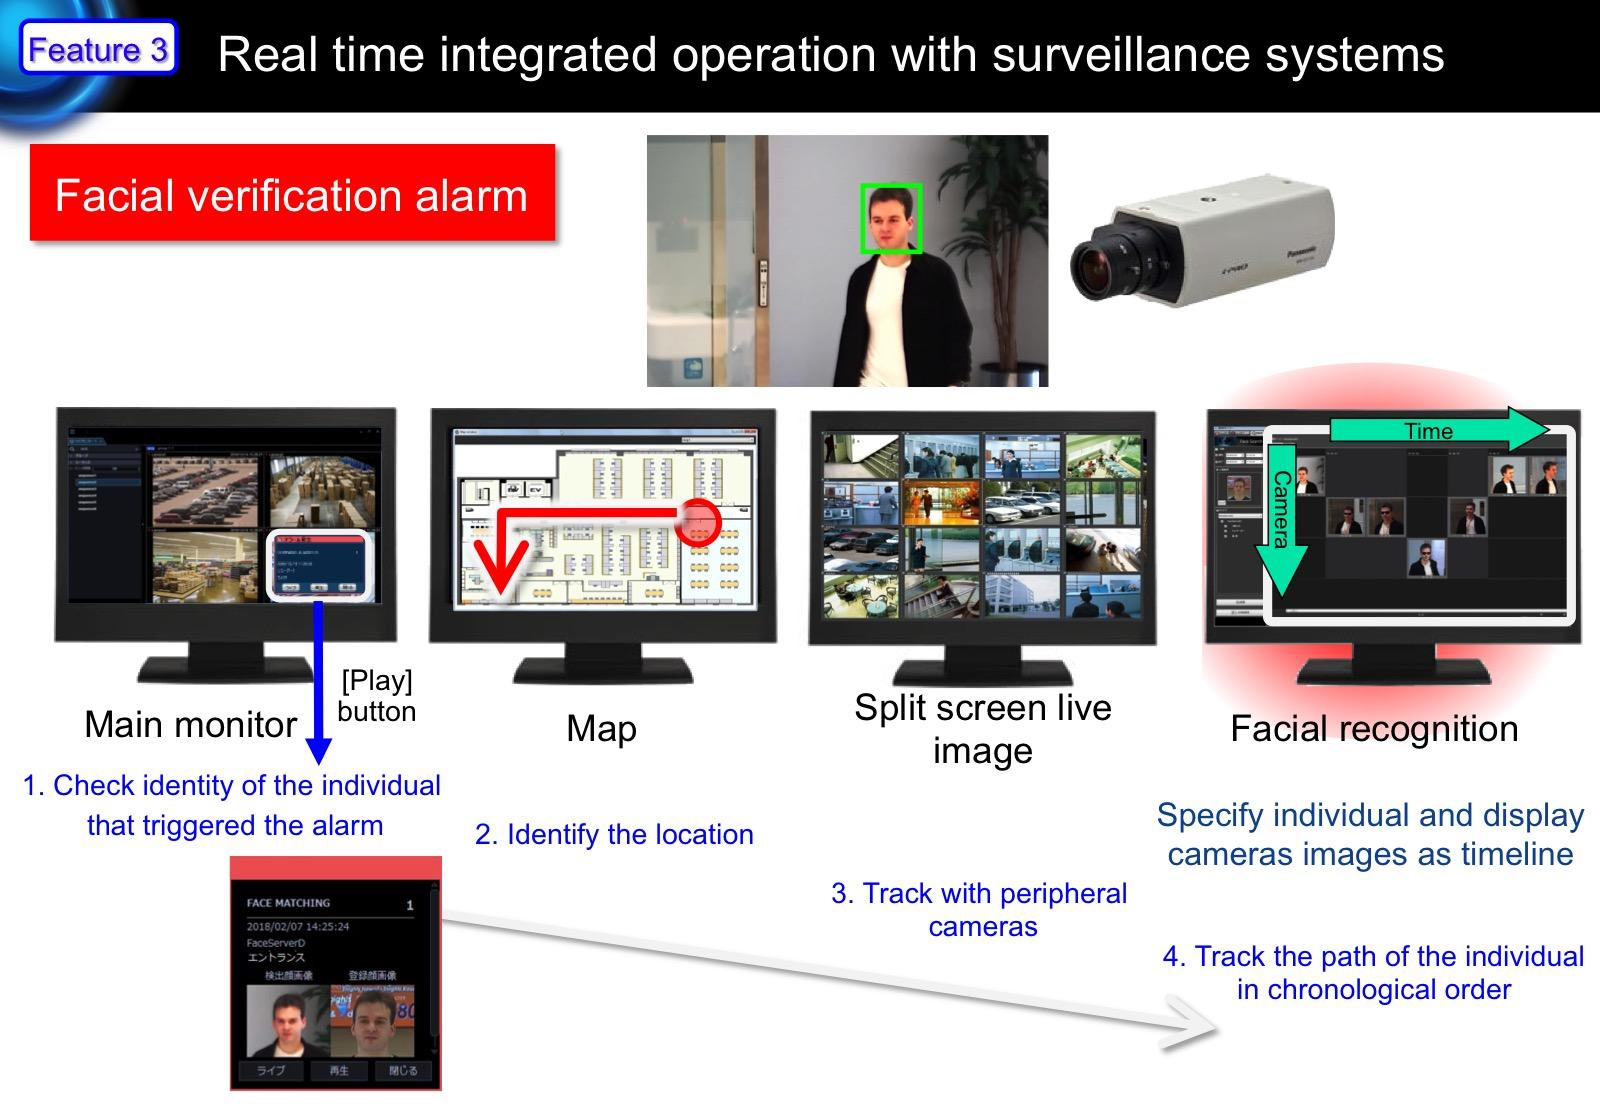 image: surveillance systems using panasonic's facial recognition technology